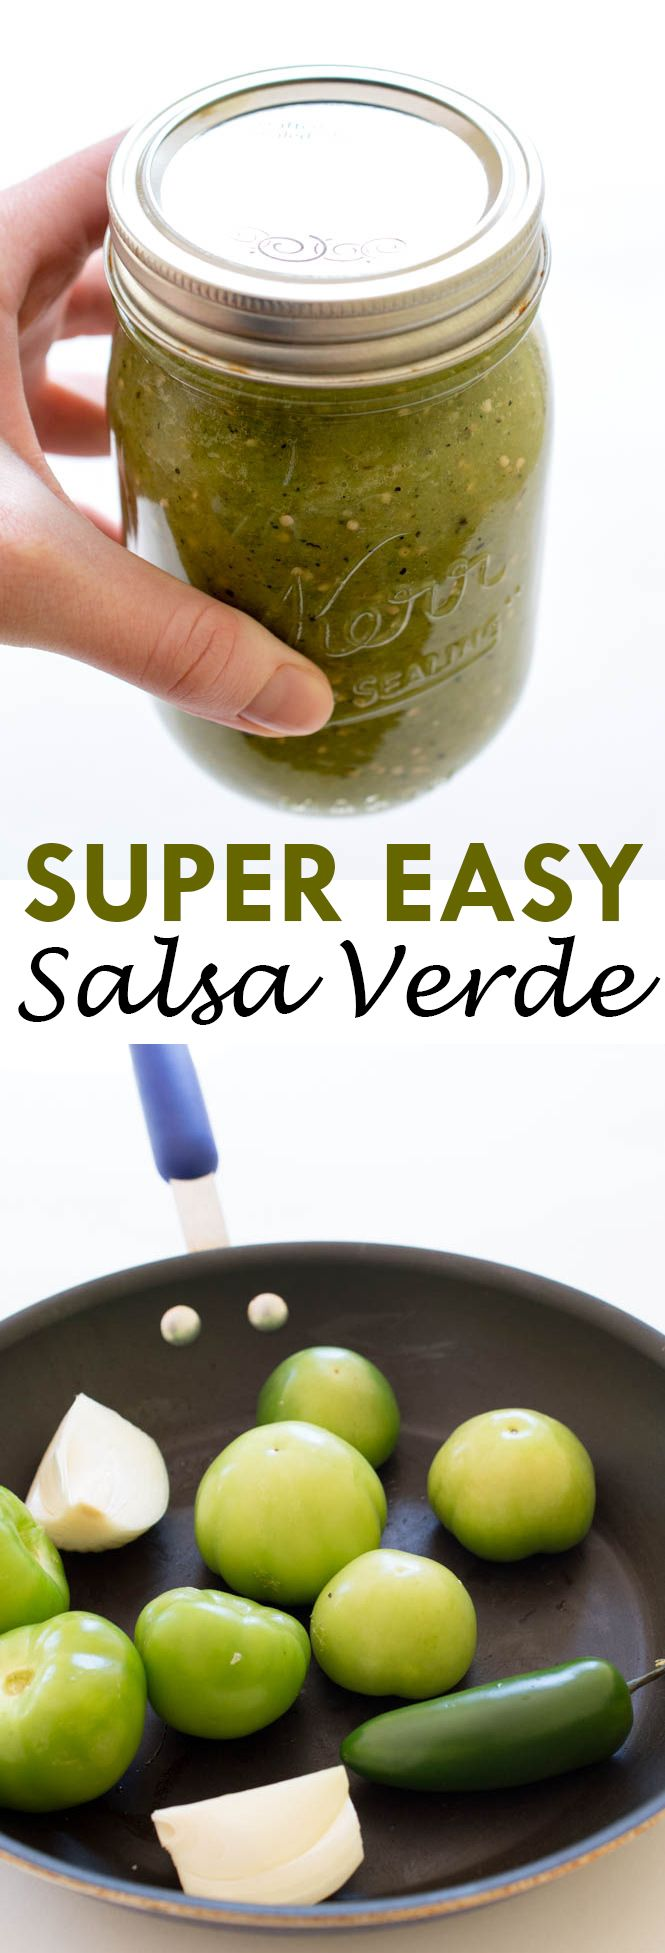 Super Easy Salsa Verde. Pan roasted for extra flavor and pureed with garlic, jalapeno, cilantro and lime juice. Only 7 ingredients!